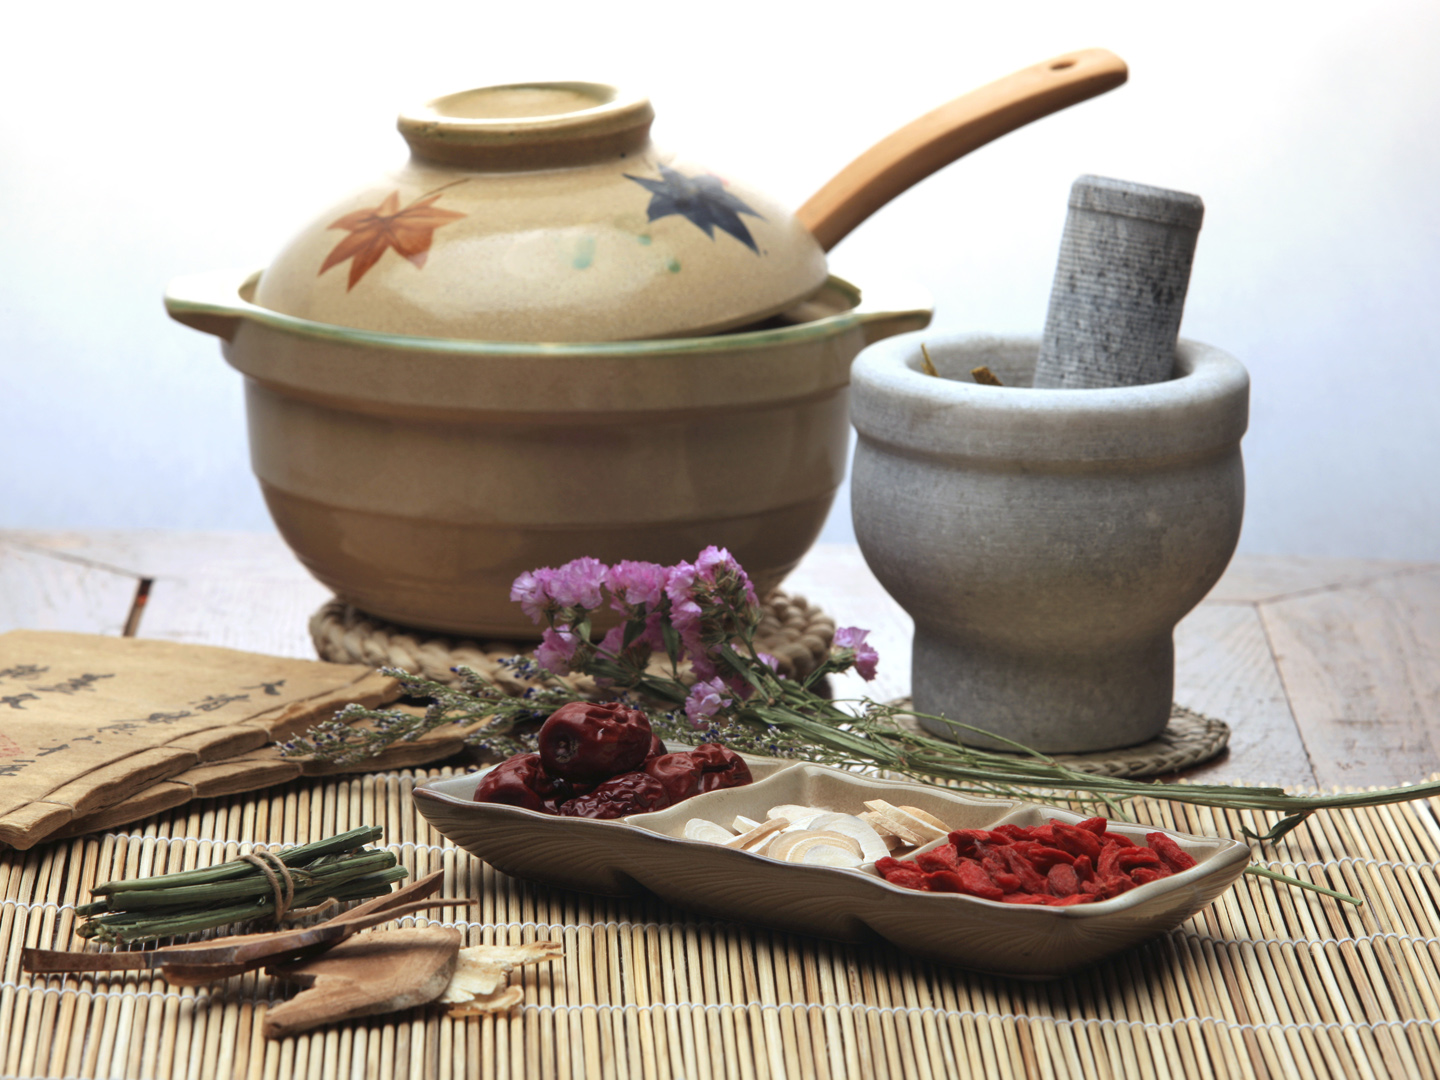 chinese herbal medicine Itm online provides education, and offers theraputic programs with a focus on natural healing techniques, such as herbal formulas, acupuncture, massage, diet, nutrition, and general health care.